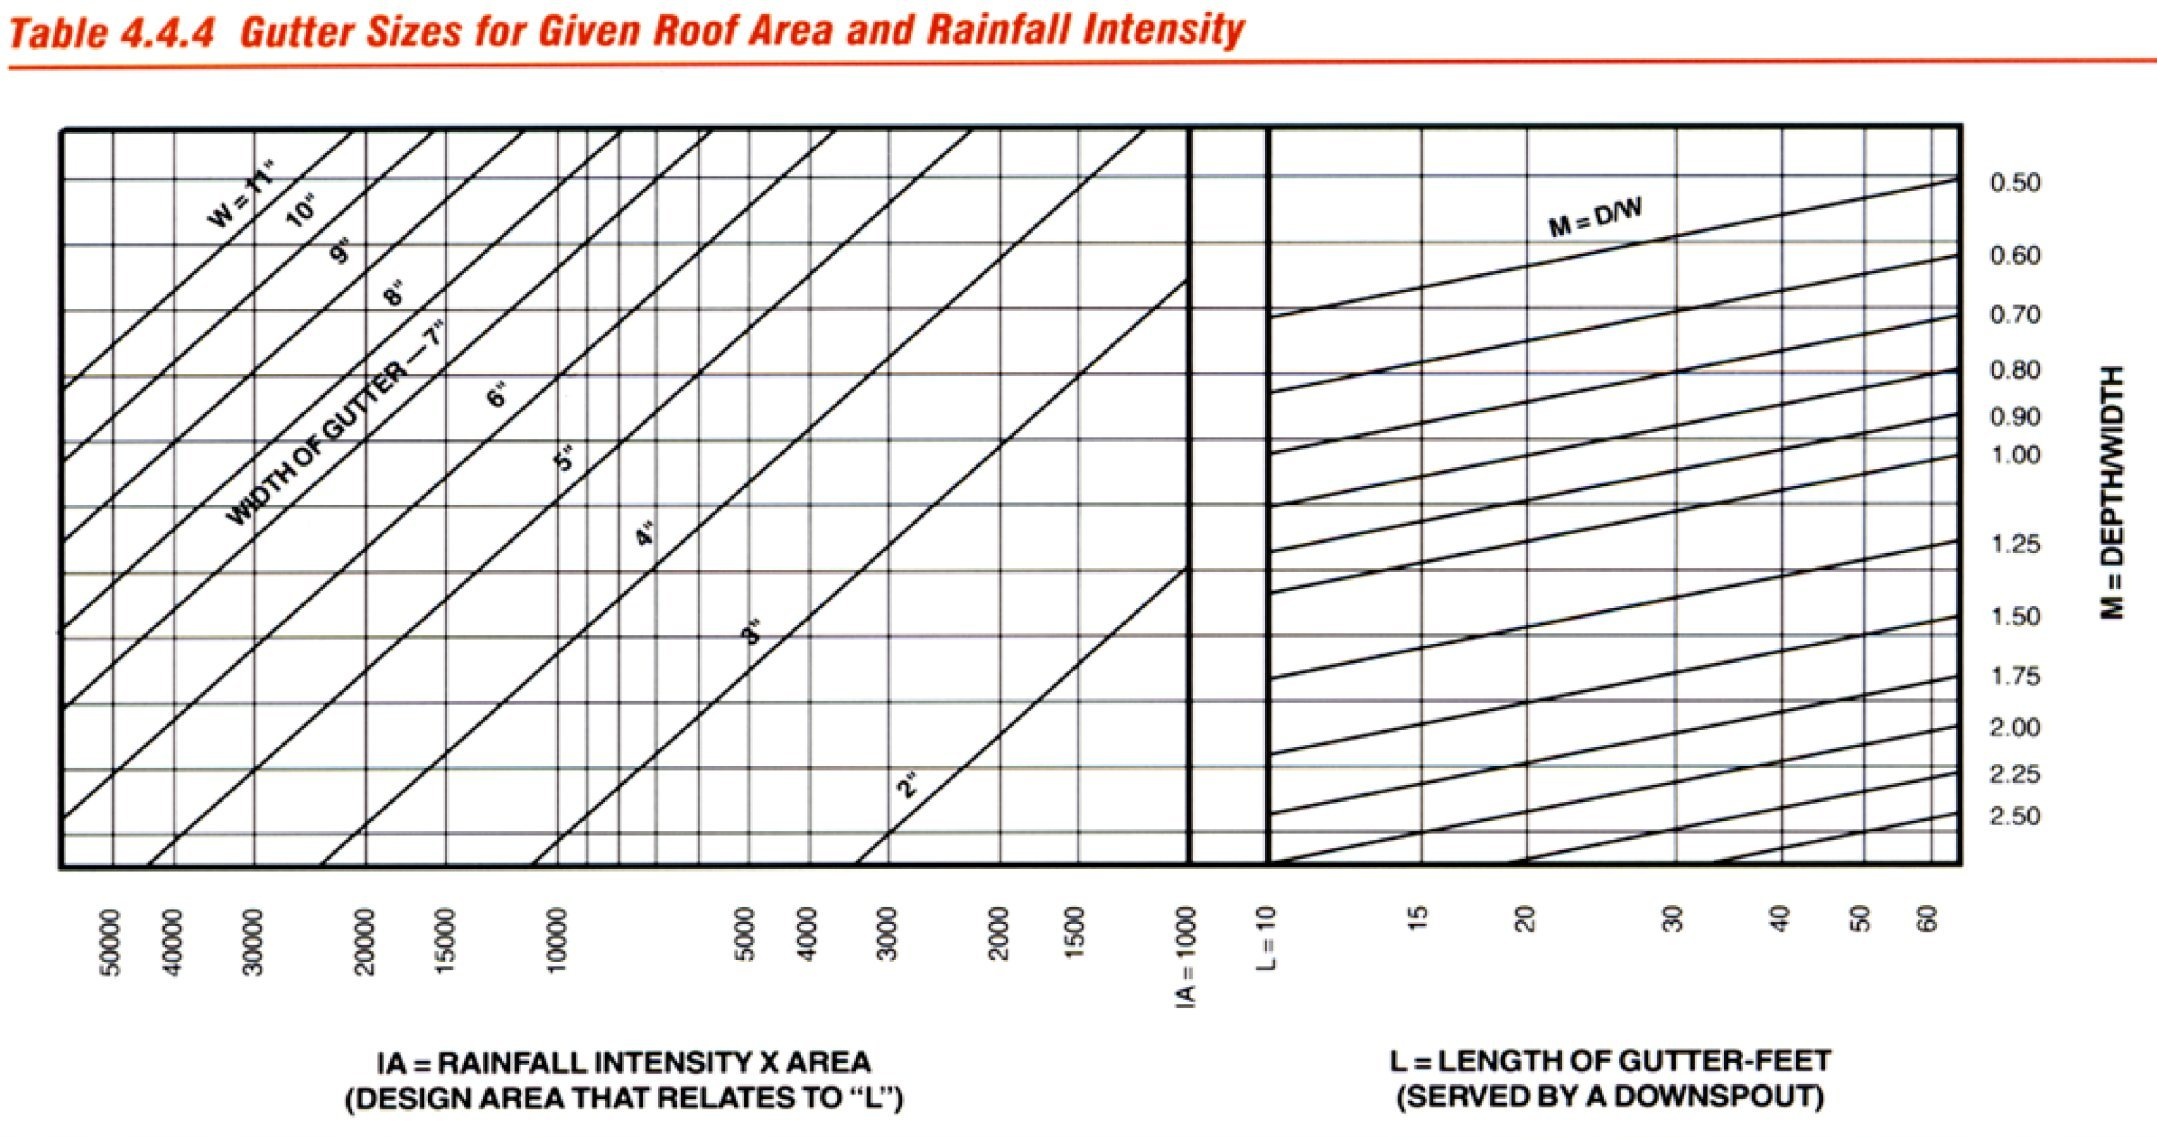 Gutter Sizes for Given Roof Area and Rainfall Intensity